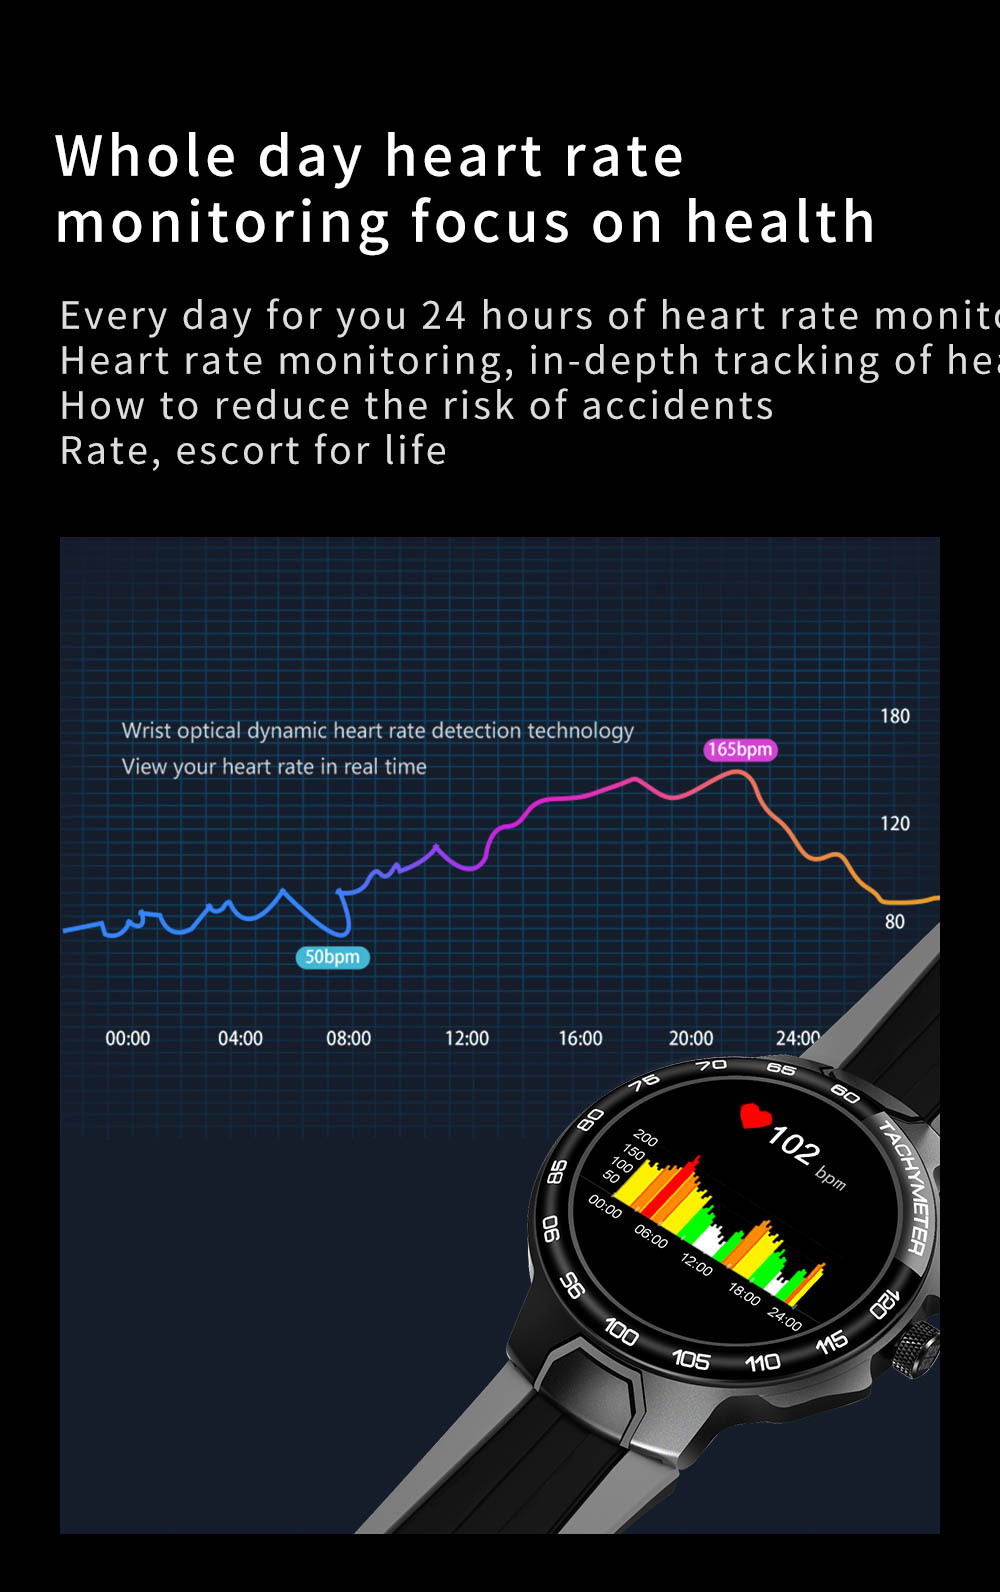 Hd4bb468235784424932f63f6a4643512s Smart Watch Men Women IP68 Waterproof Bluetooth 5.0 24 Exercise Modes Smartwatch E1-5 Heart Rate Monitoring for Android Iosr A